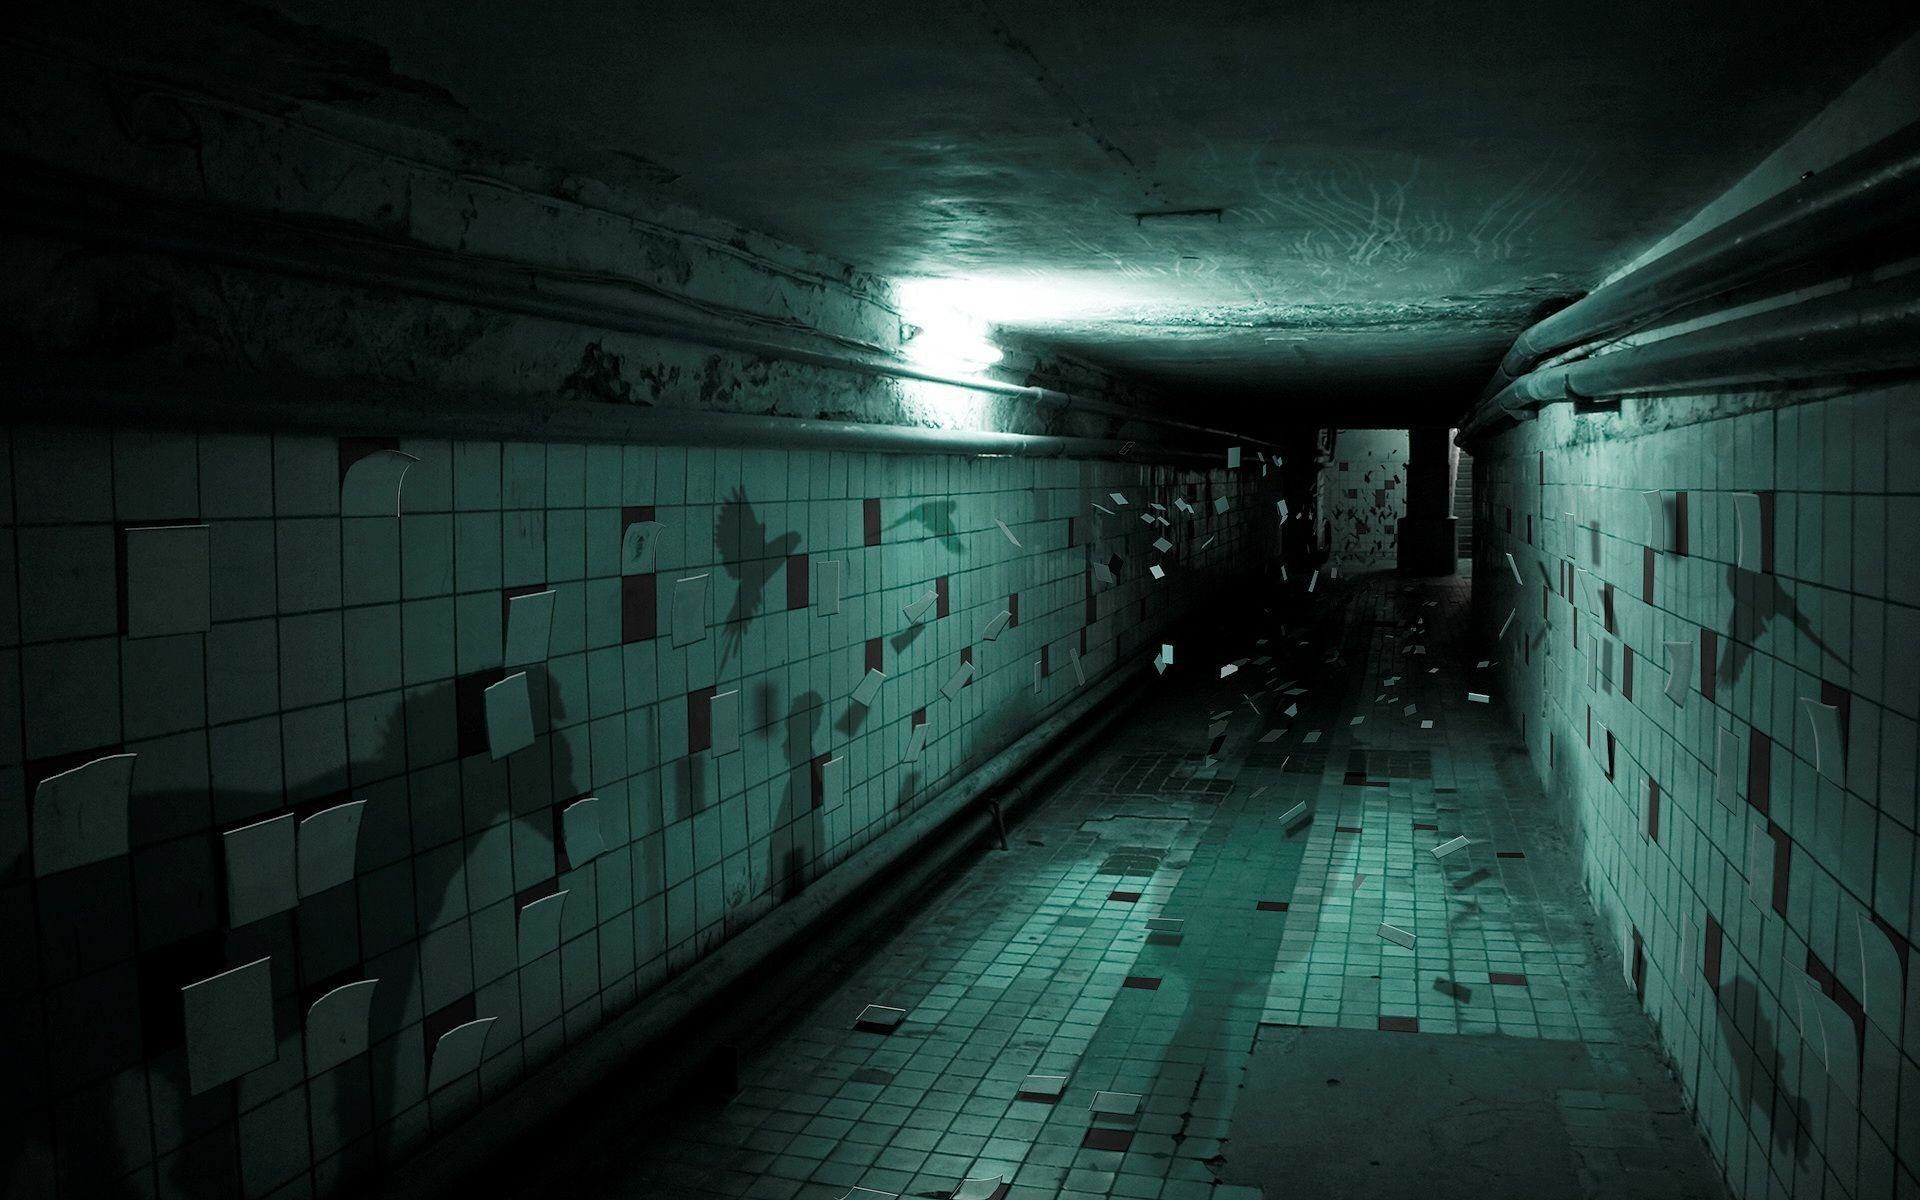 1920x1200 Wallpapers For Scary Wallpaper 3d Scary Wallpaper Scary Backgrounds Creepy Backgrounds